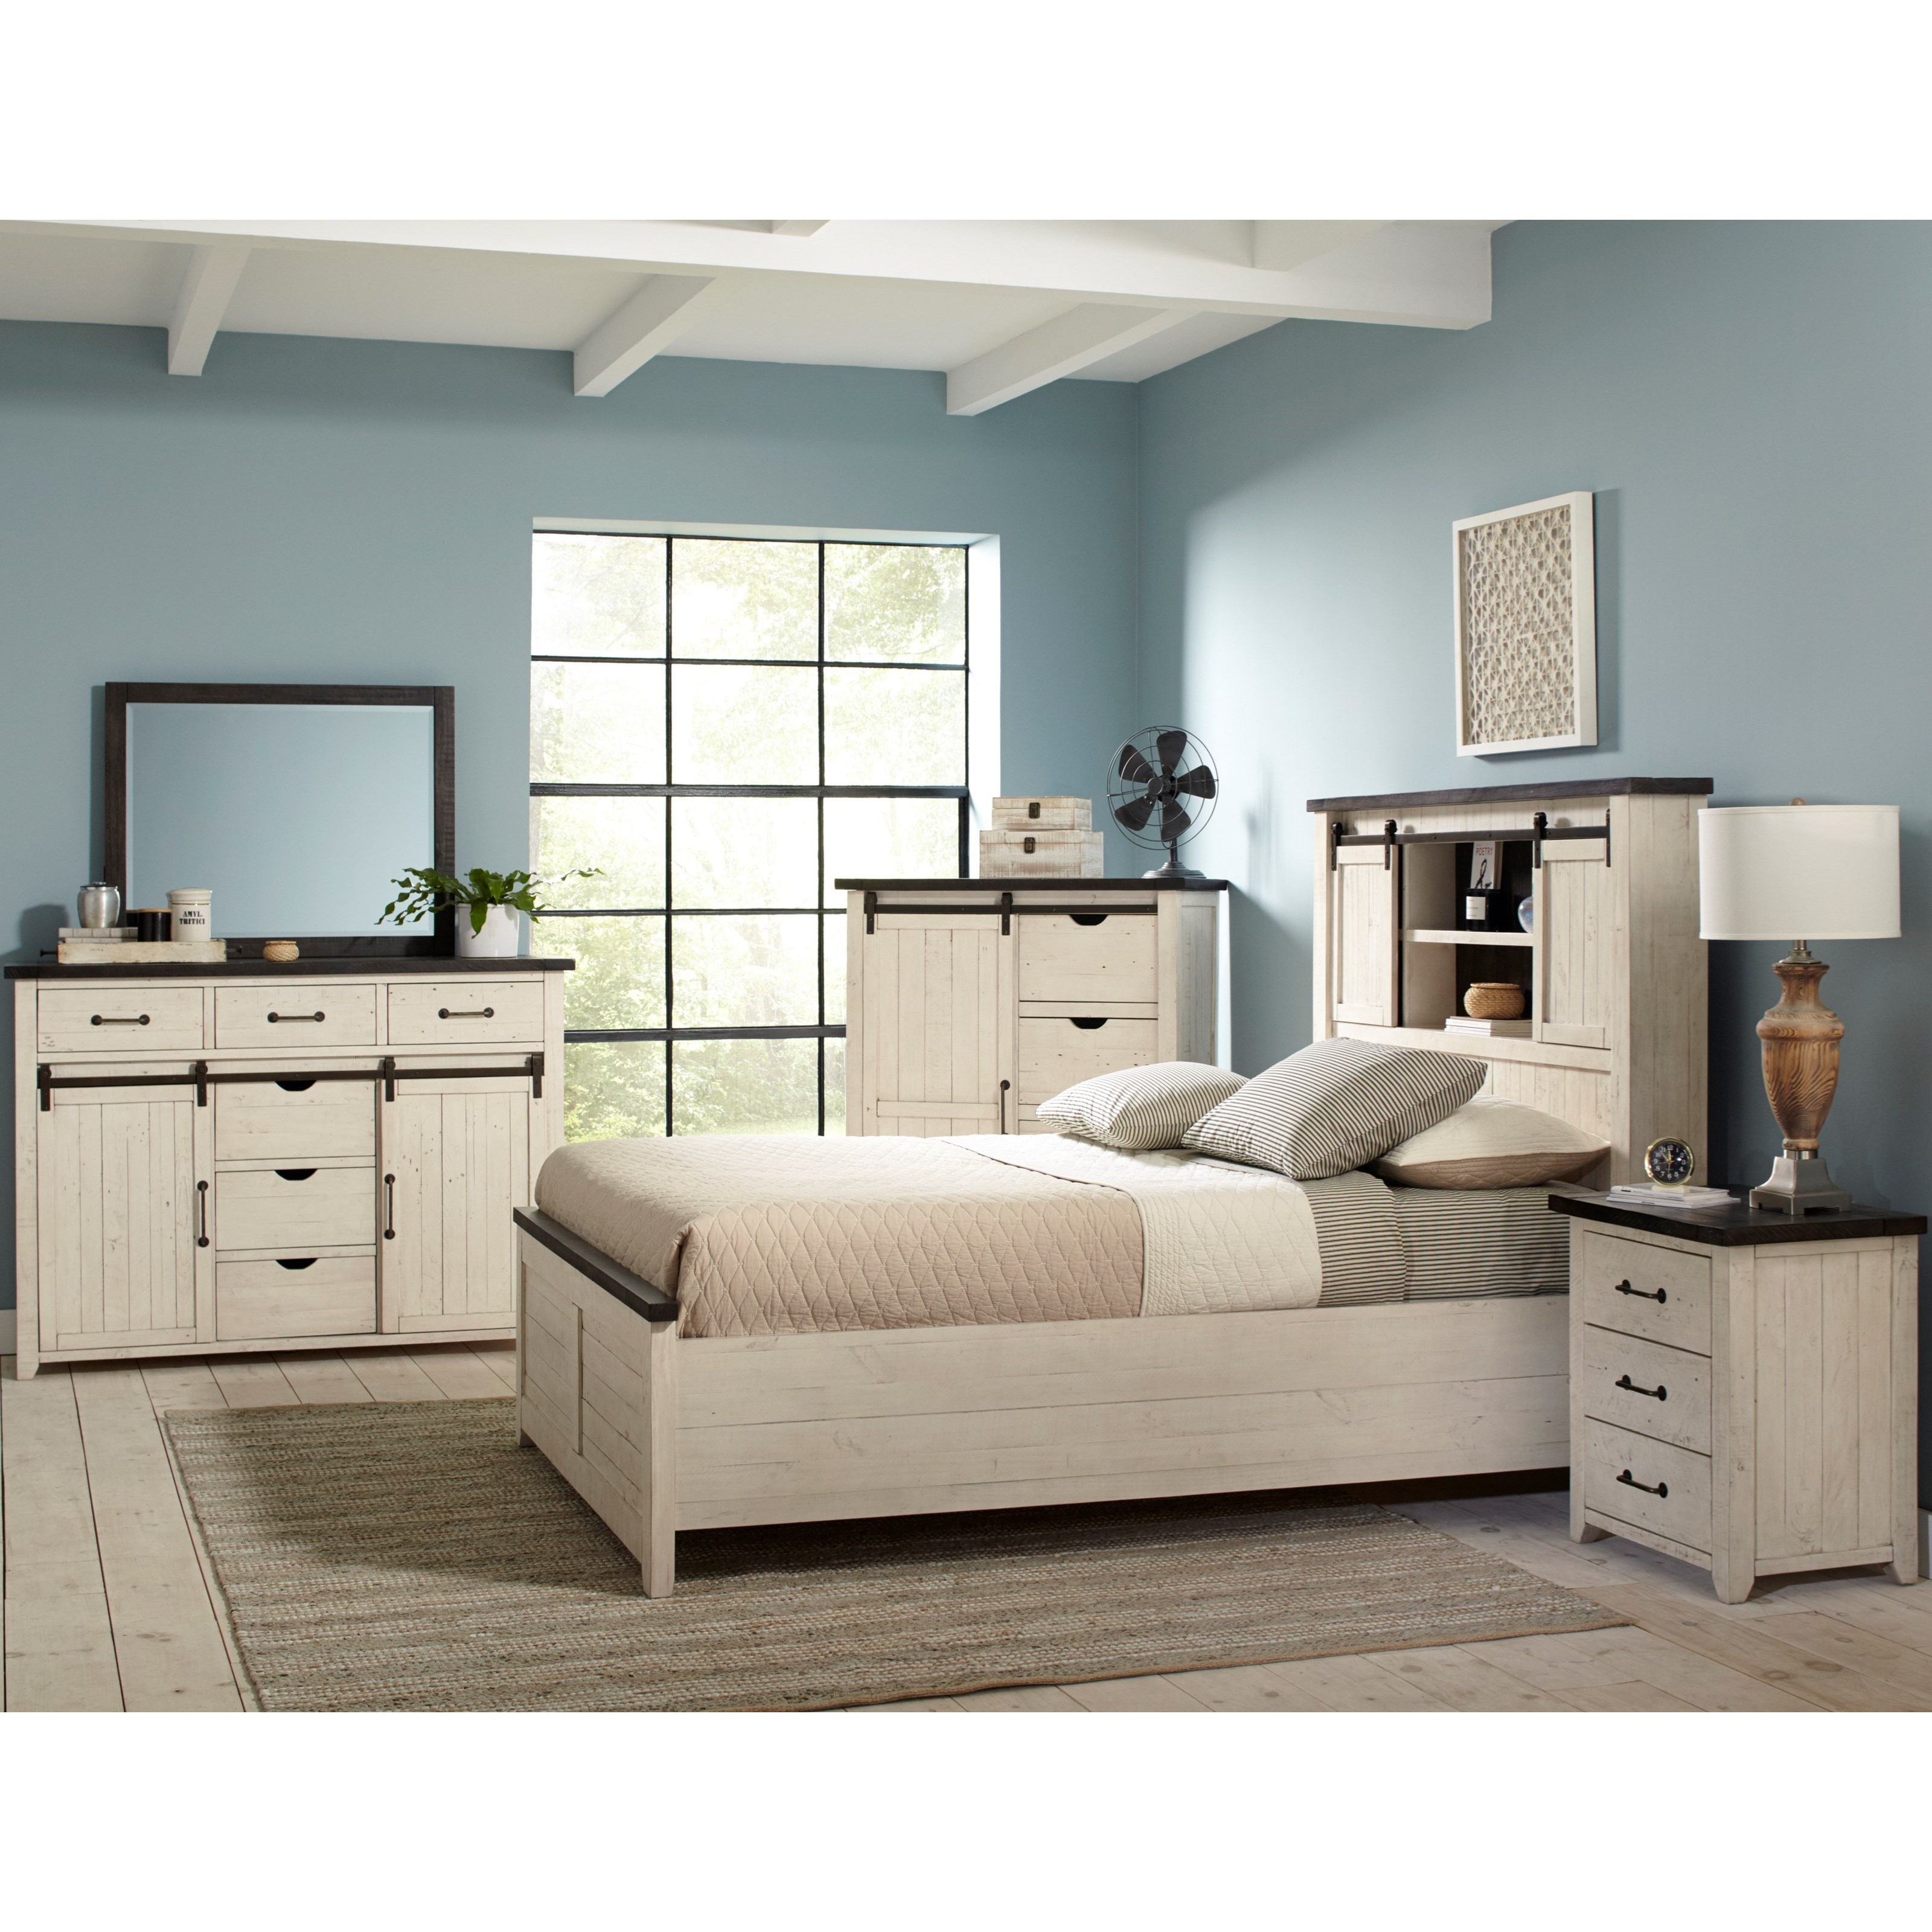 Madison County Queen Bedroom Group - NO CHEST by Jofran at Beck's Furniture